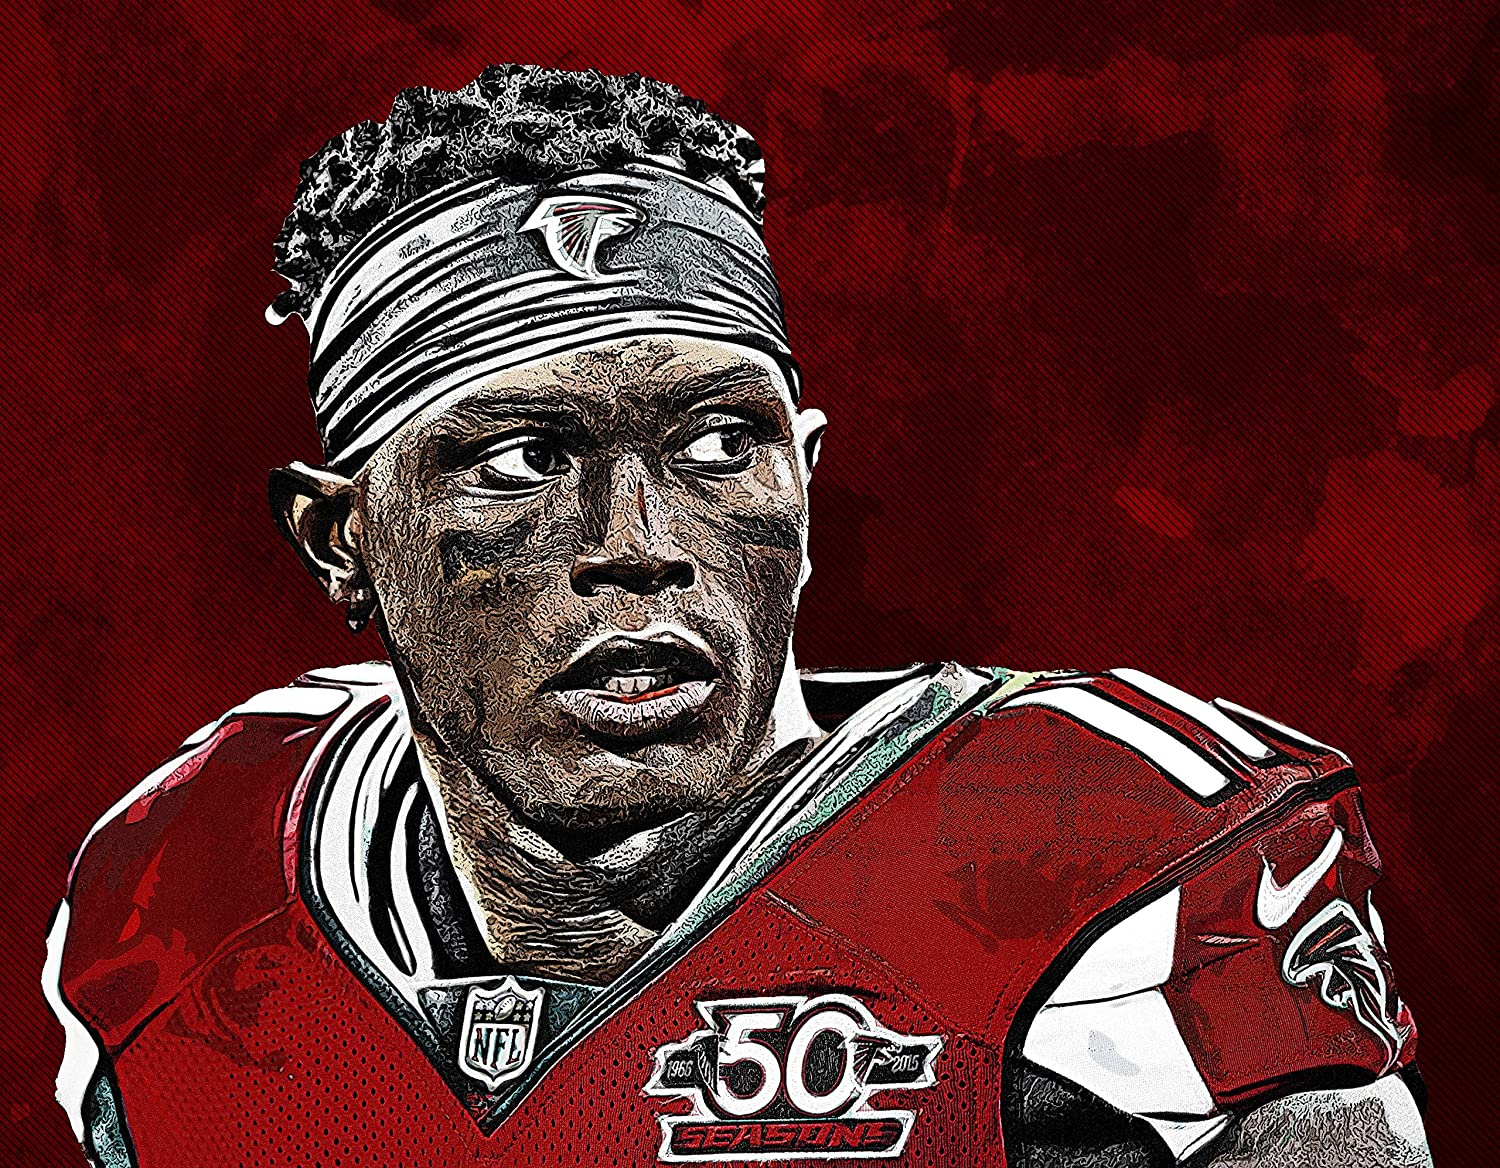 Julio Jones Poster Print, American Football Player, Artwork, Wall Art, Posters for Wall, Canvas Art, Julio Jones Decor, No Frame Poster, Original Art Poster Gift Size 24 x 32 Inches